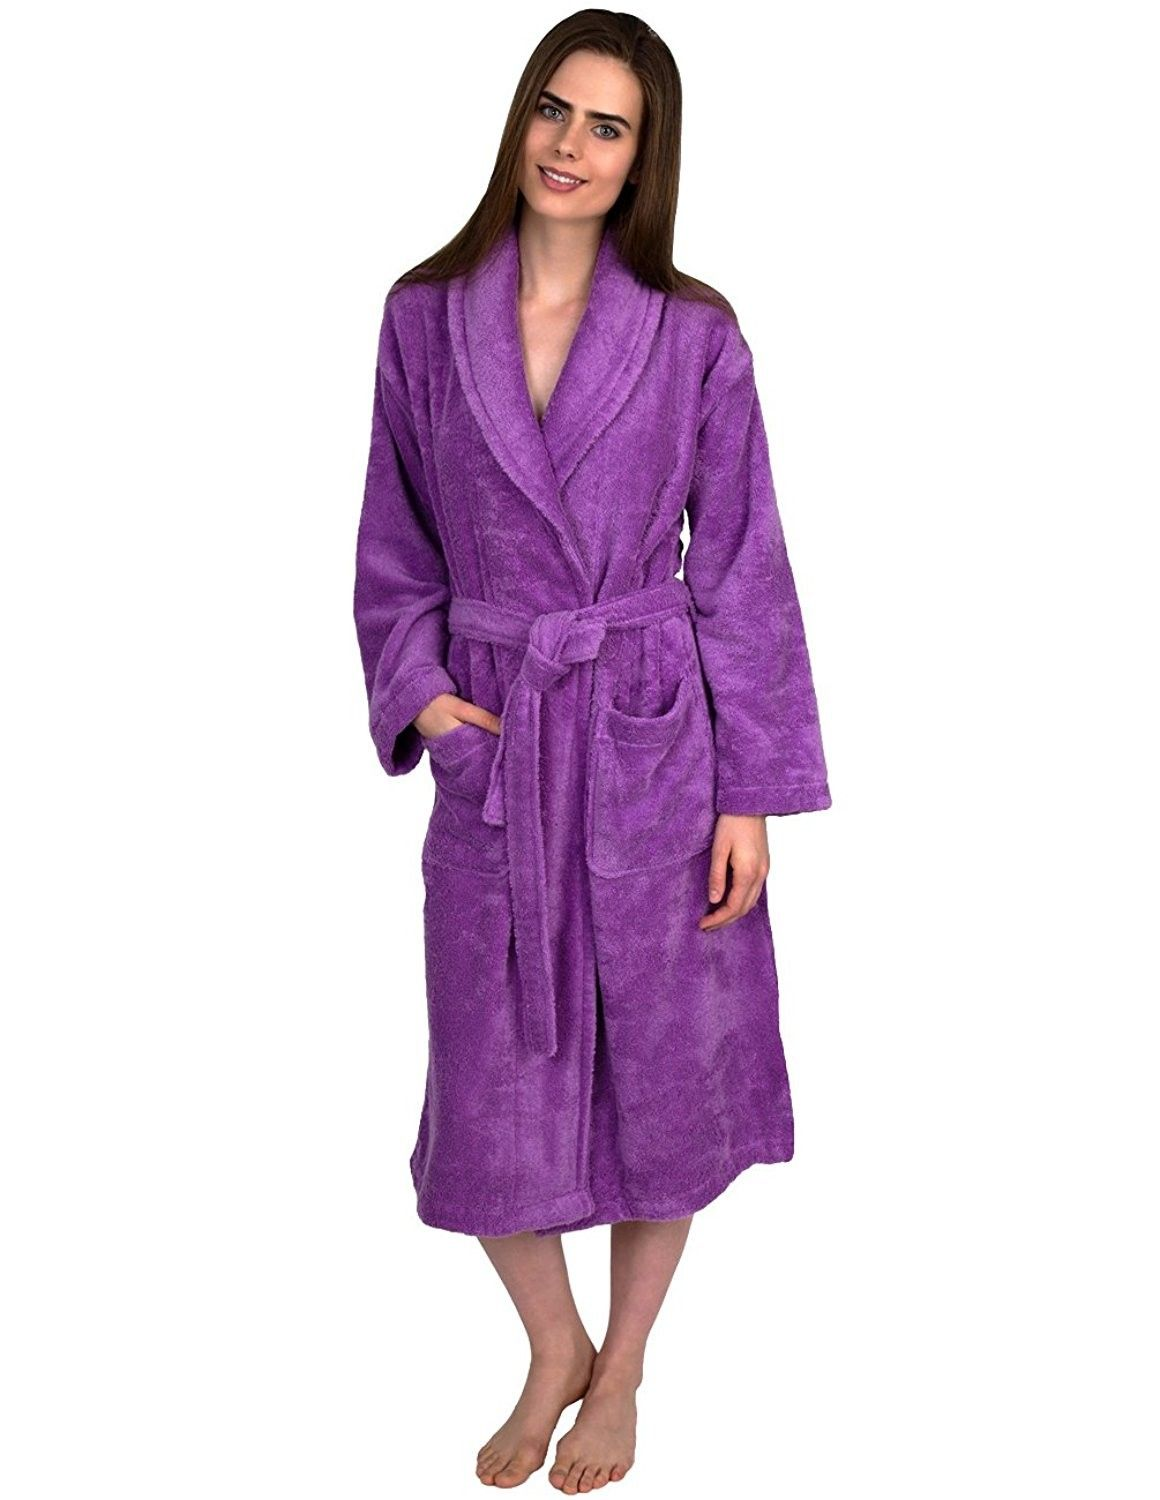 b546972b06 Womens robe turkish cotton terry shawl bathrobe made in turkey jpg  1160x1500 Women robes